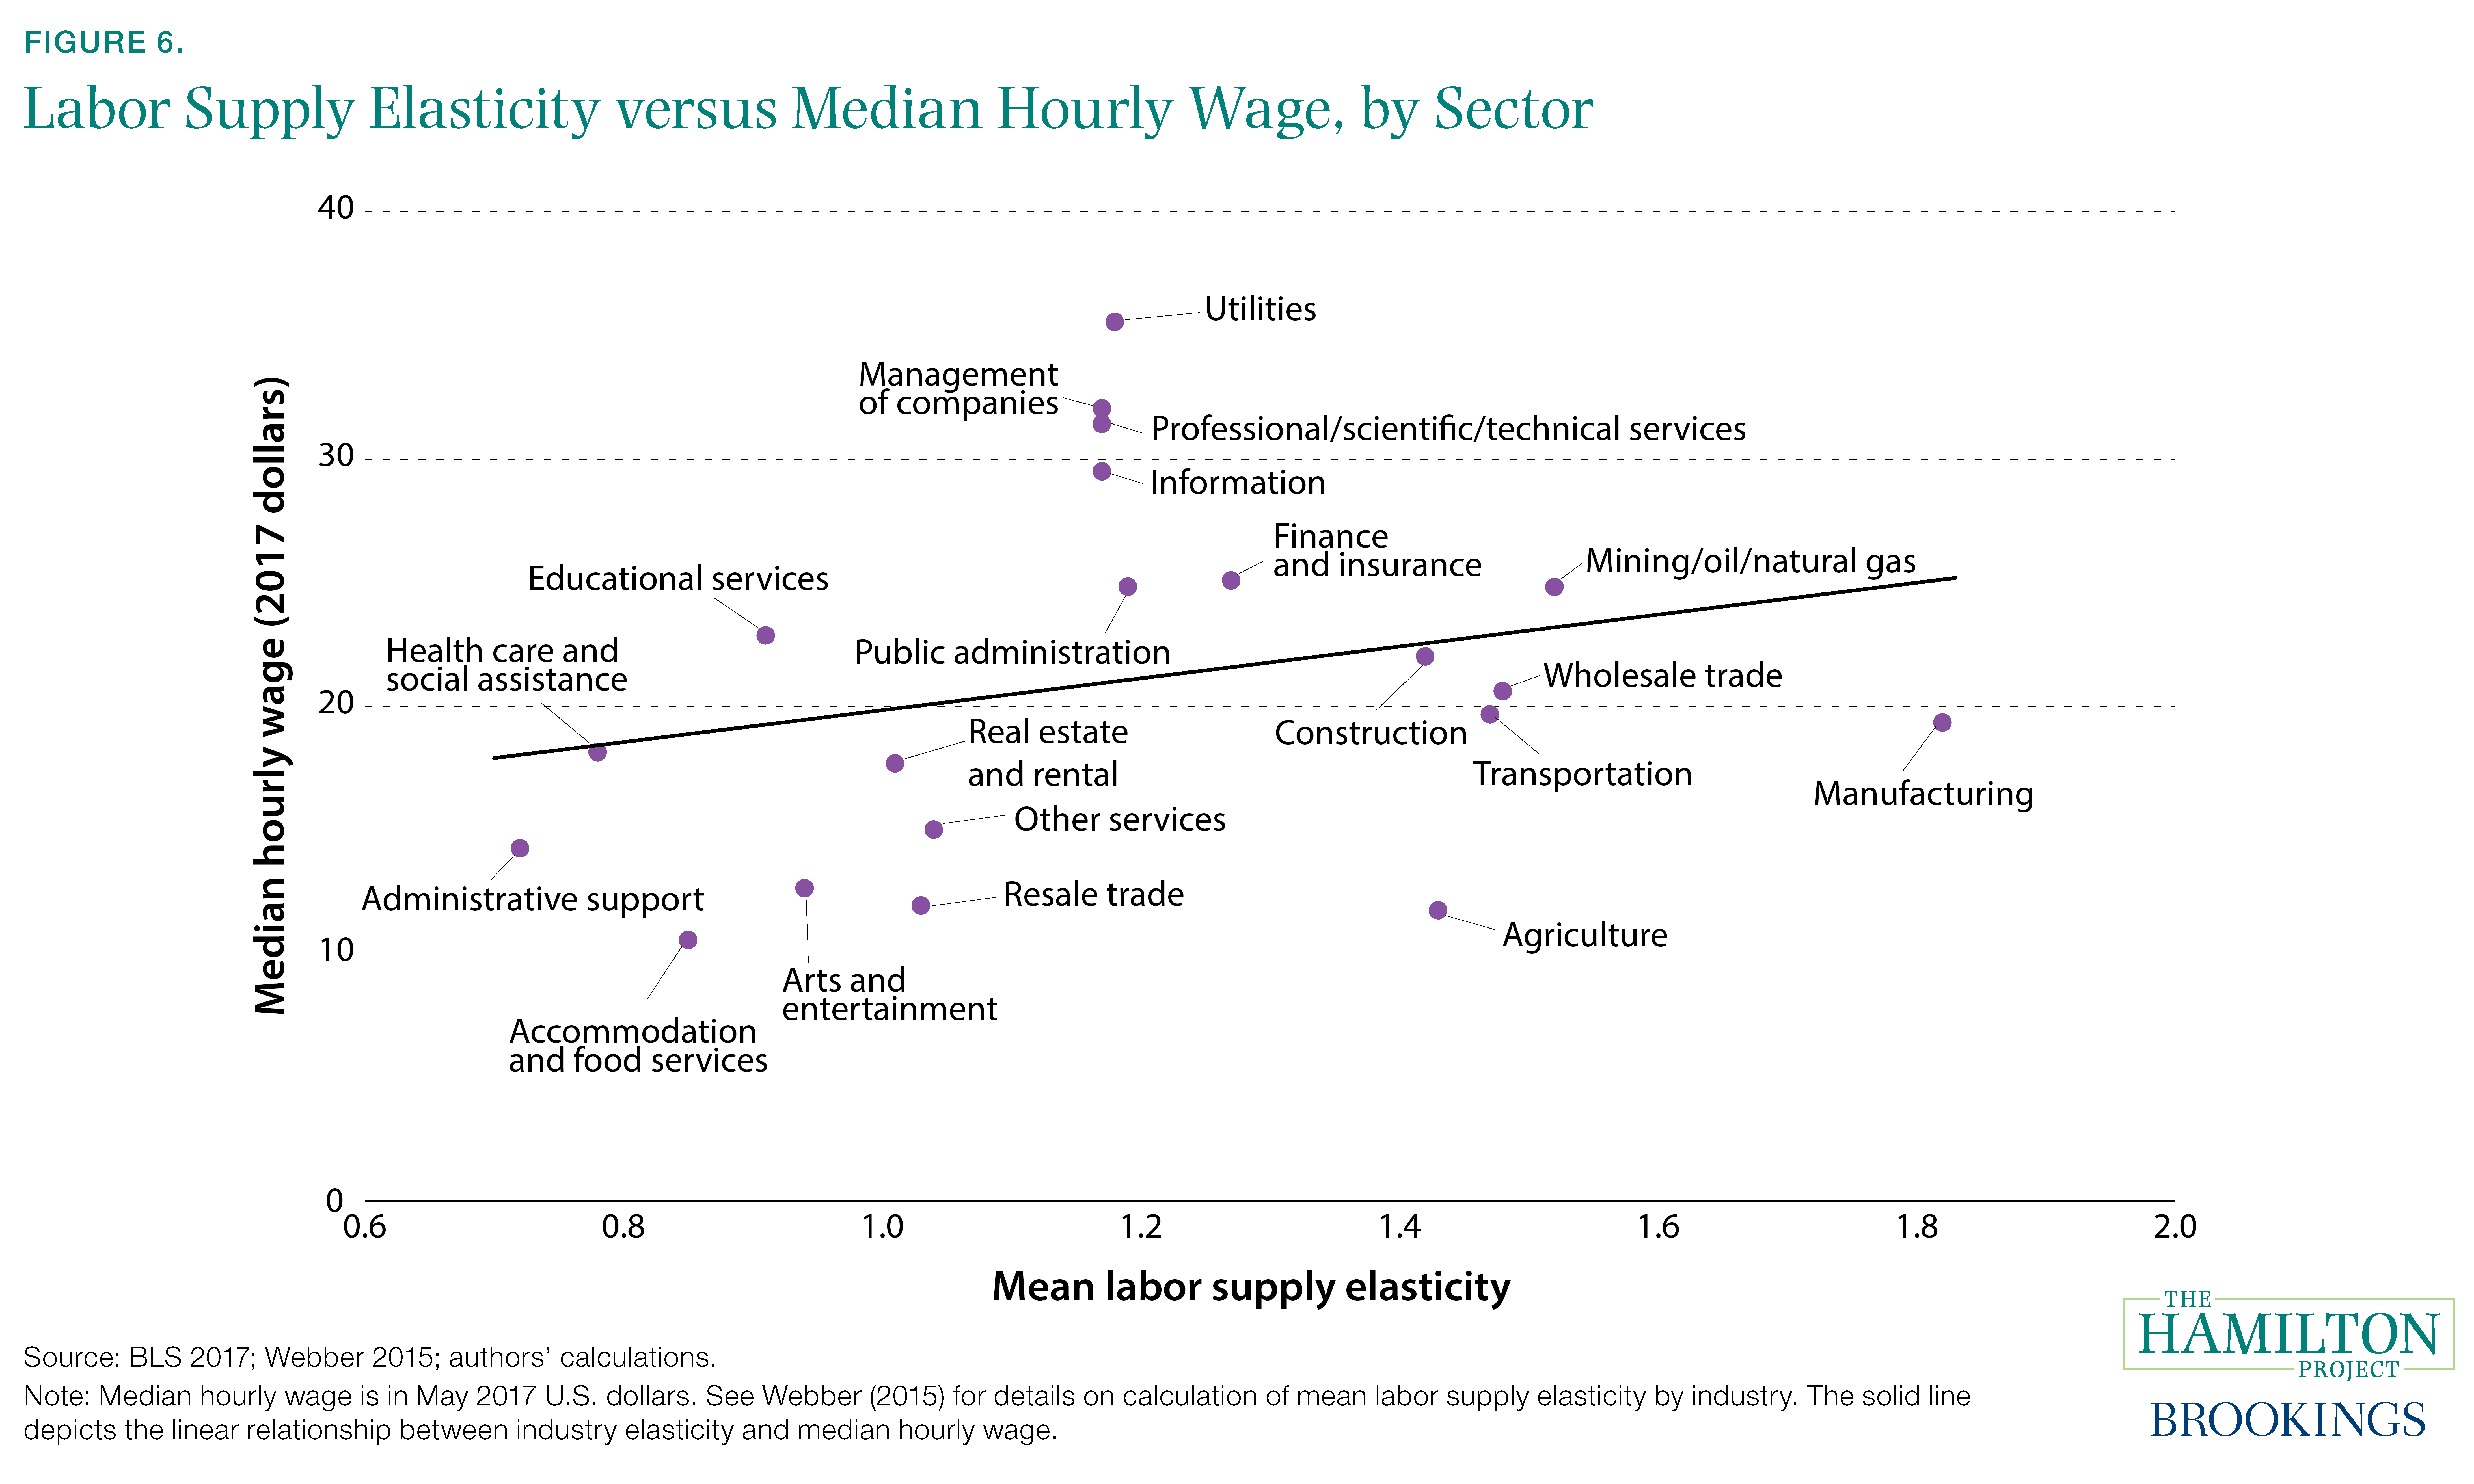 Figure 6. Labor Supply Elasticity versus Median Hourly Wage, by Sector